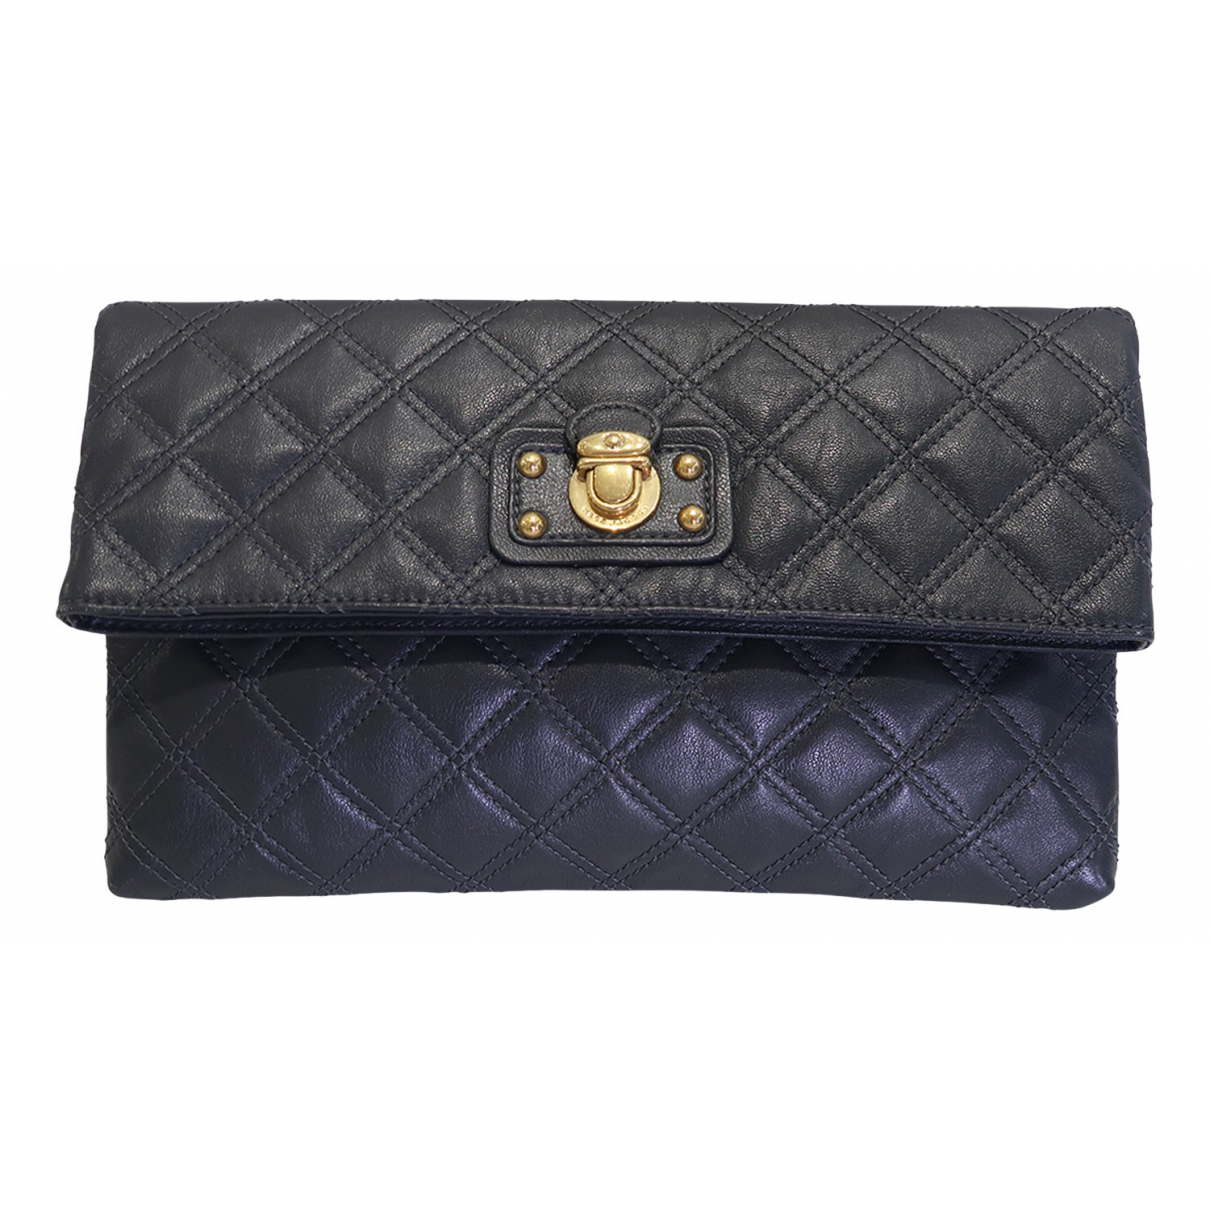 Marc By Marc Jacobs N Grey Leather Clutch bag for Women N